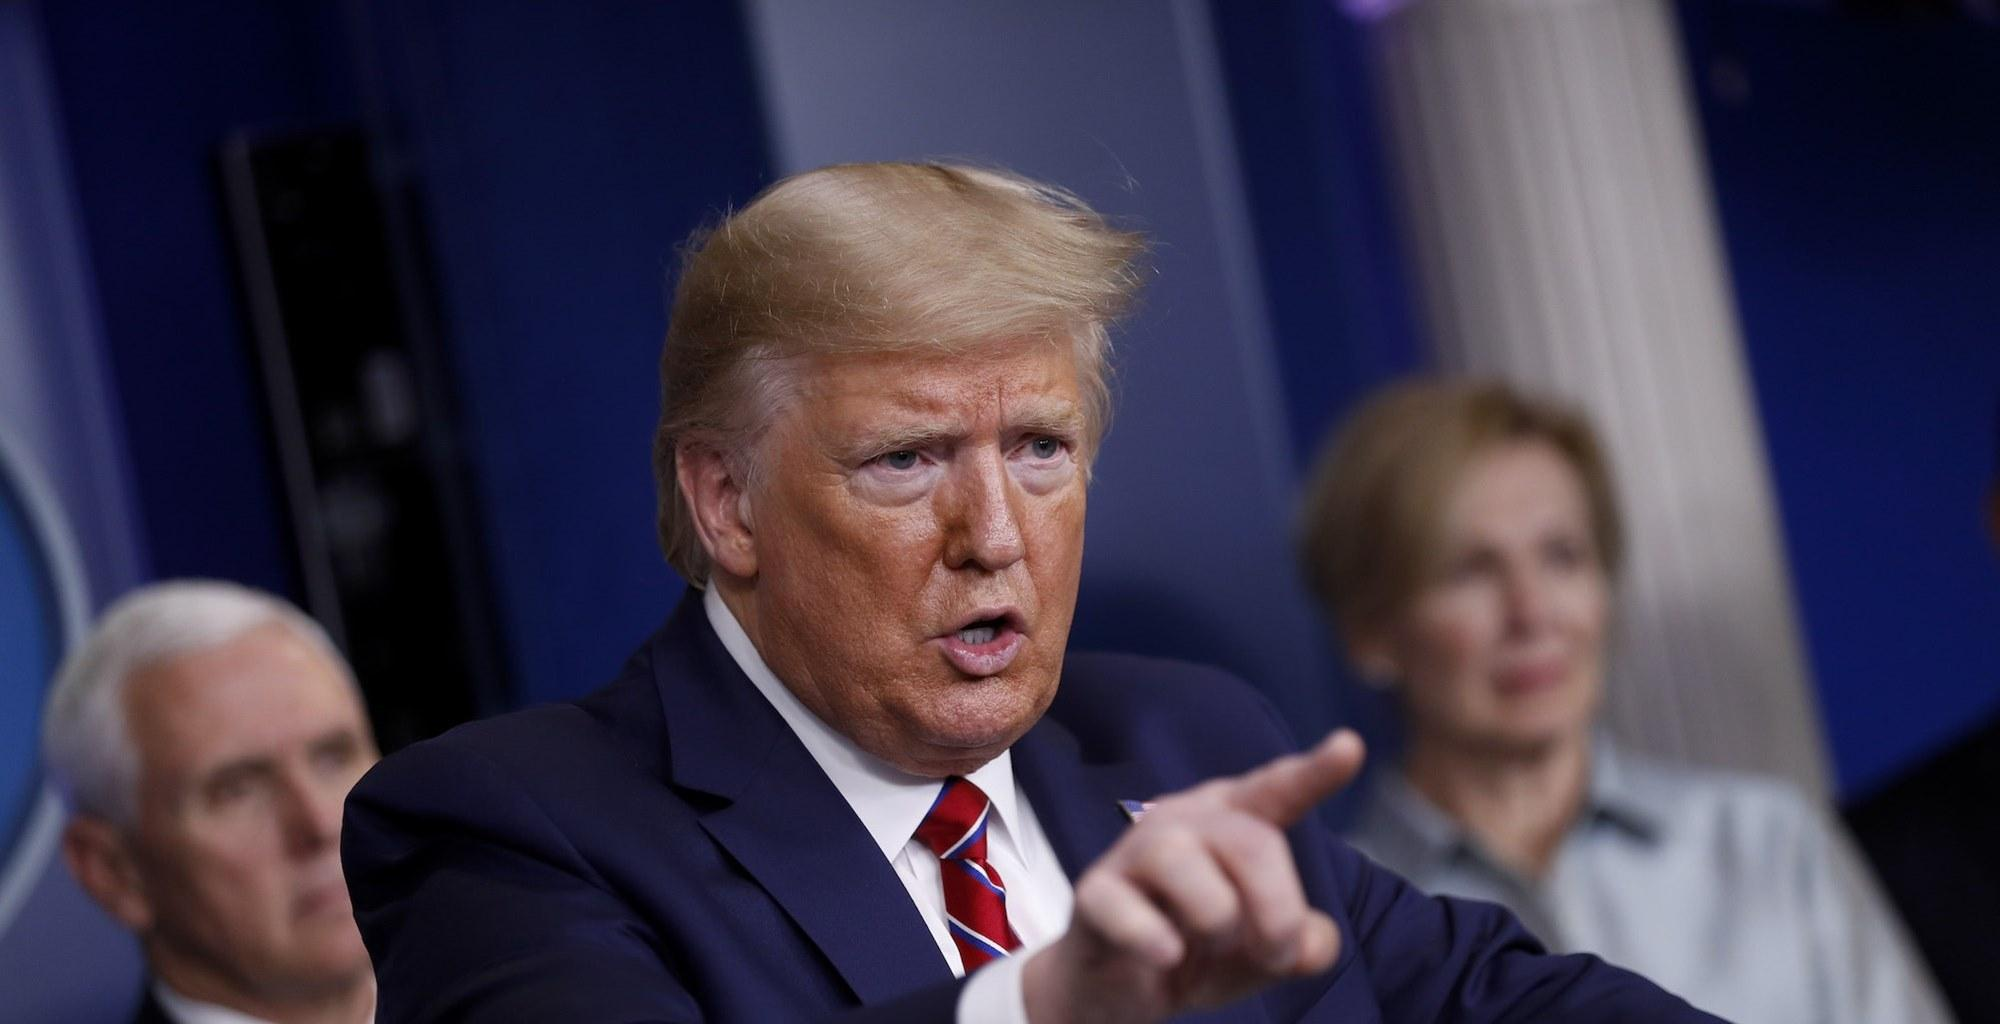 Donald Trump Slams Democratic Governors In Insane Interview And Confesses That He Is Annoyed To Hear New York Governor Andrew Cuomo Make This Request